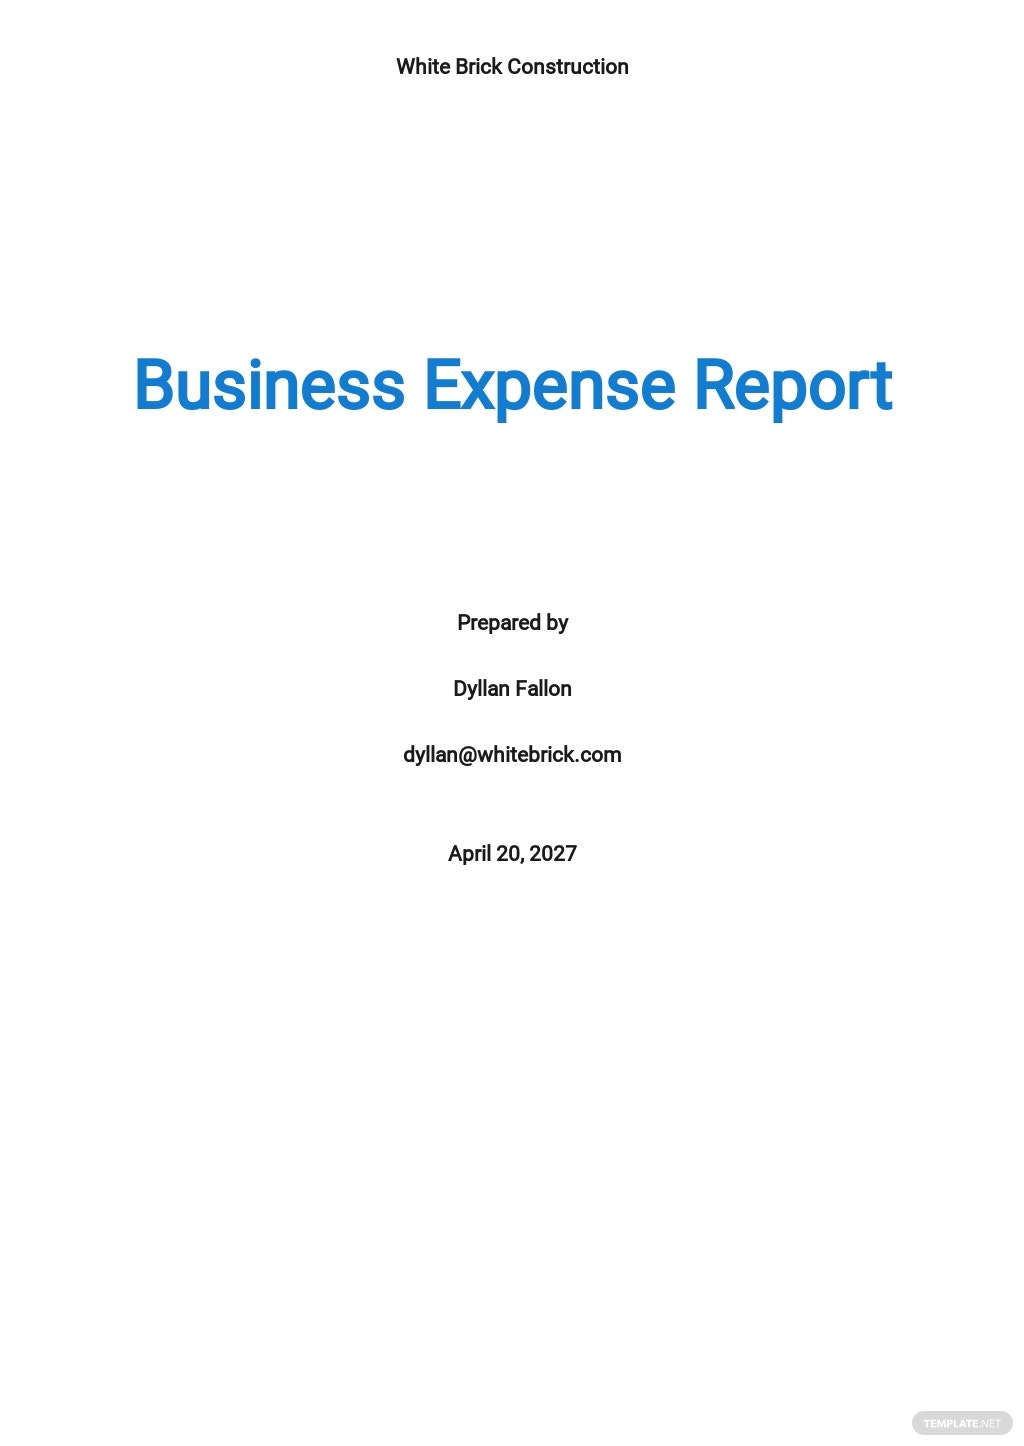 Free Business Expense Report Template.jpe